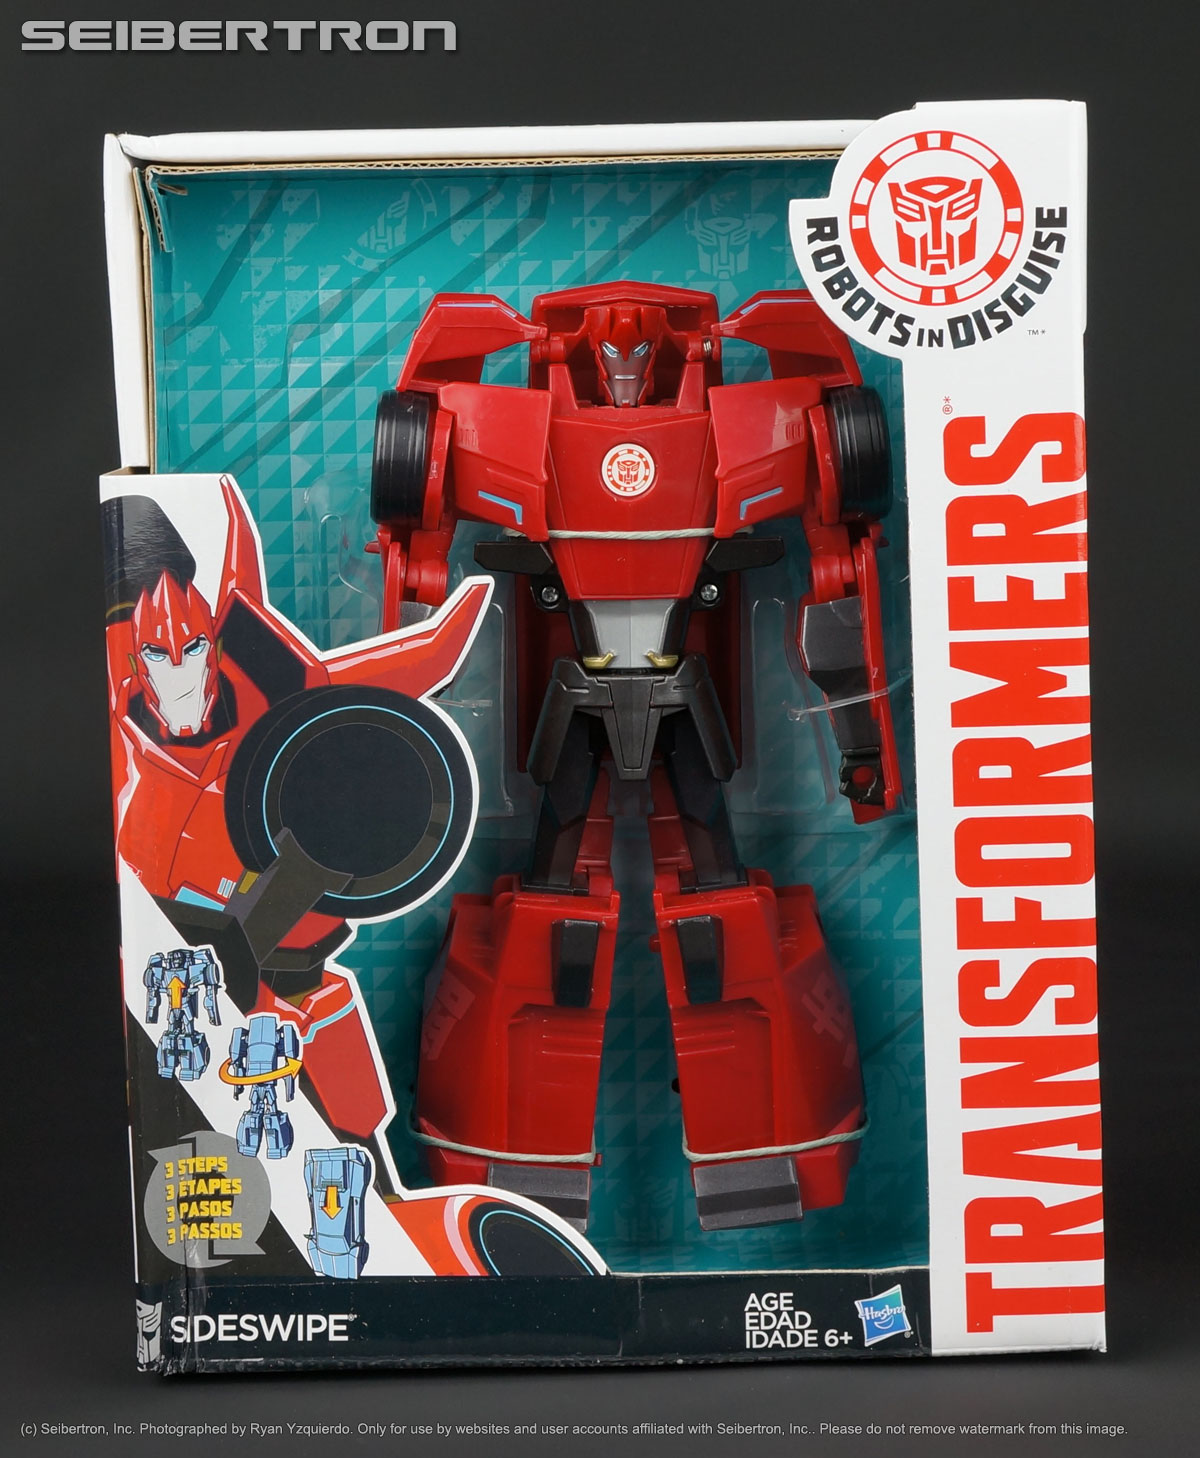 3-Step SIDESWIPE Transformers Robots In Disguise 2015